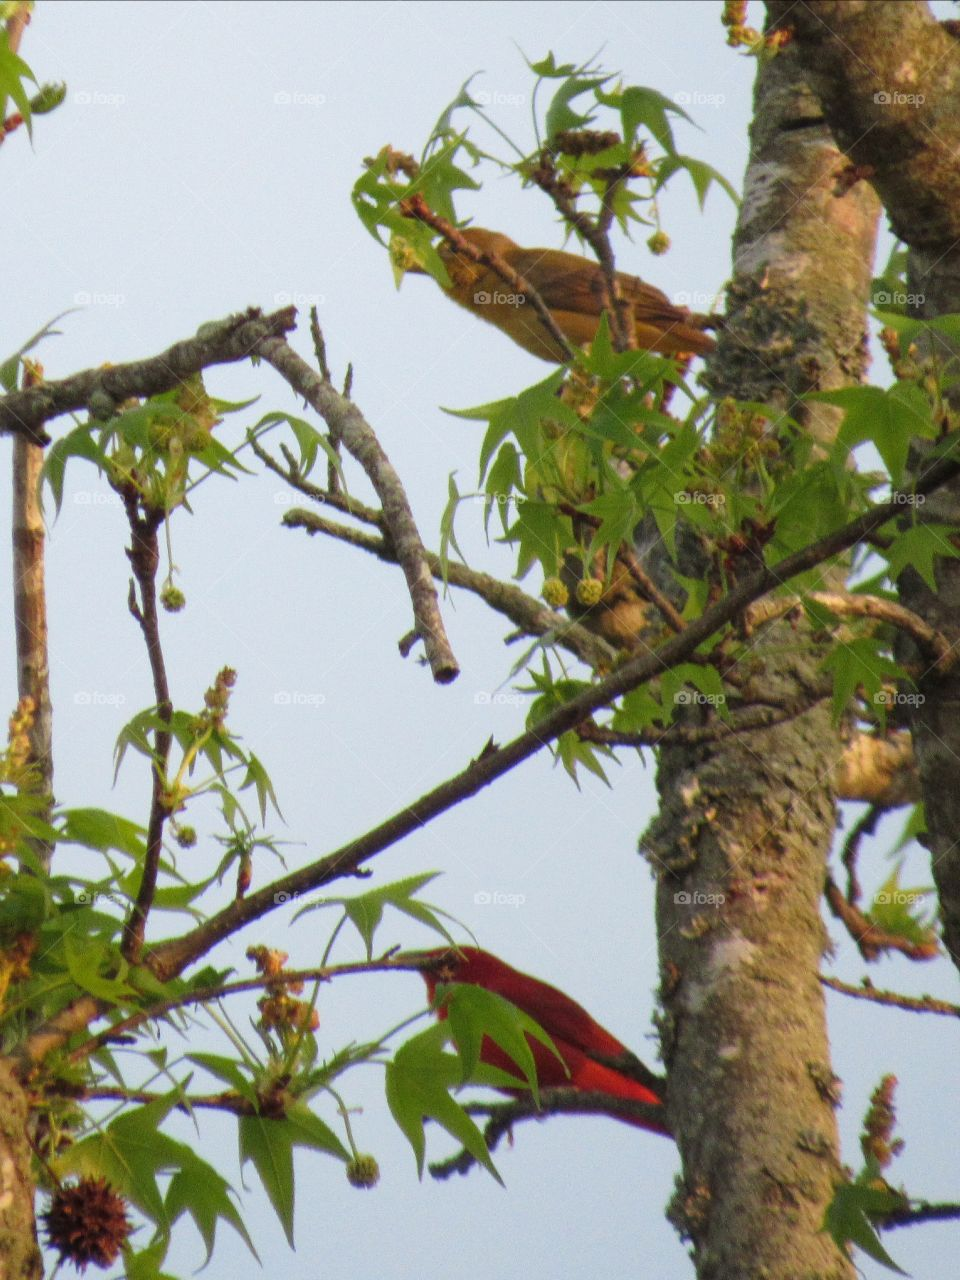 Male (bottom) and female (top) summer Tanager in a sweet gum tree